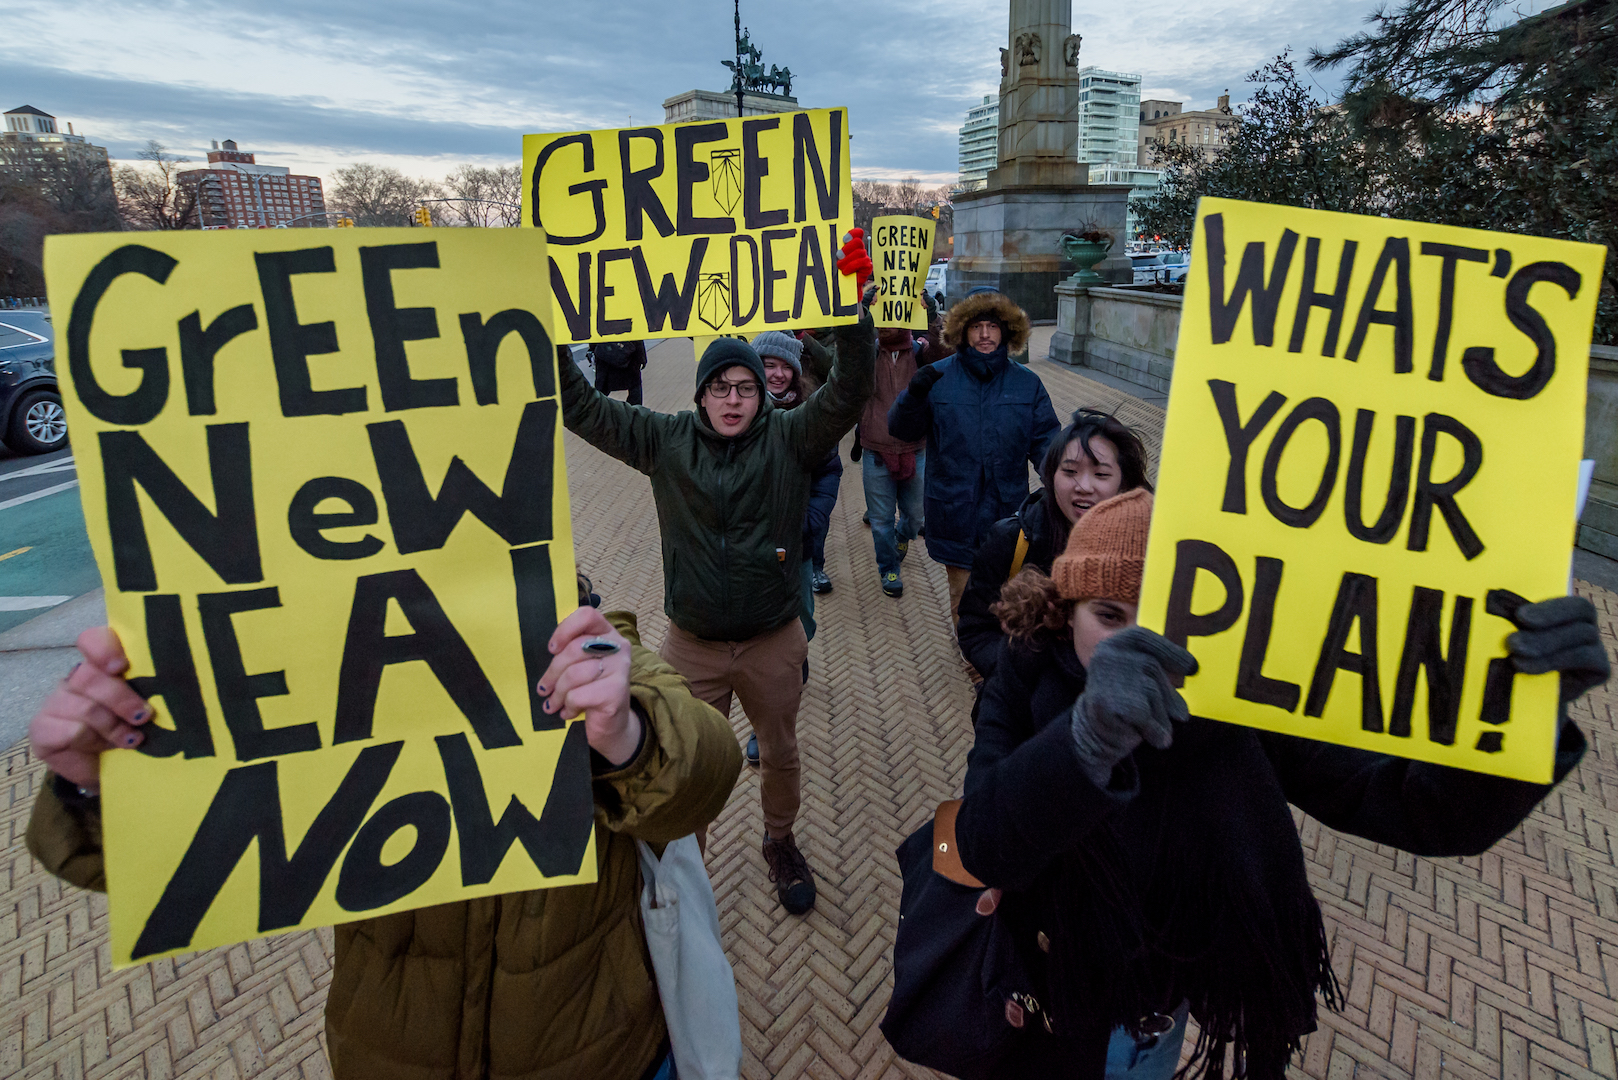 Clock ticking, climate policy awaits a reboot. Green New Deal, or pipe dream?